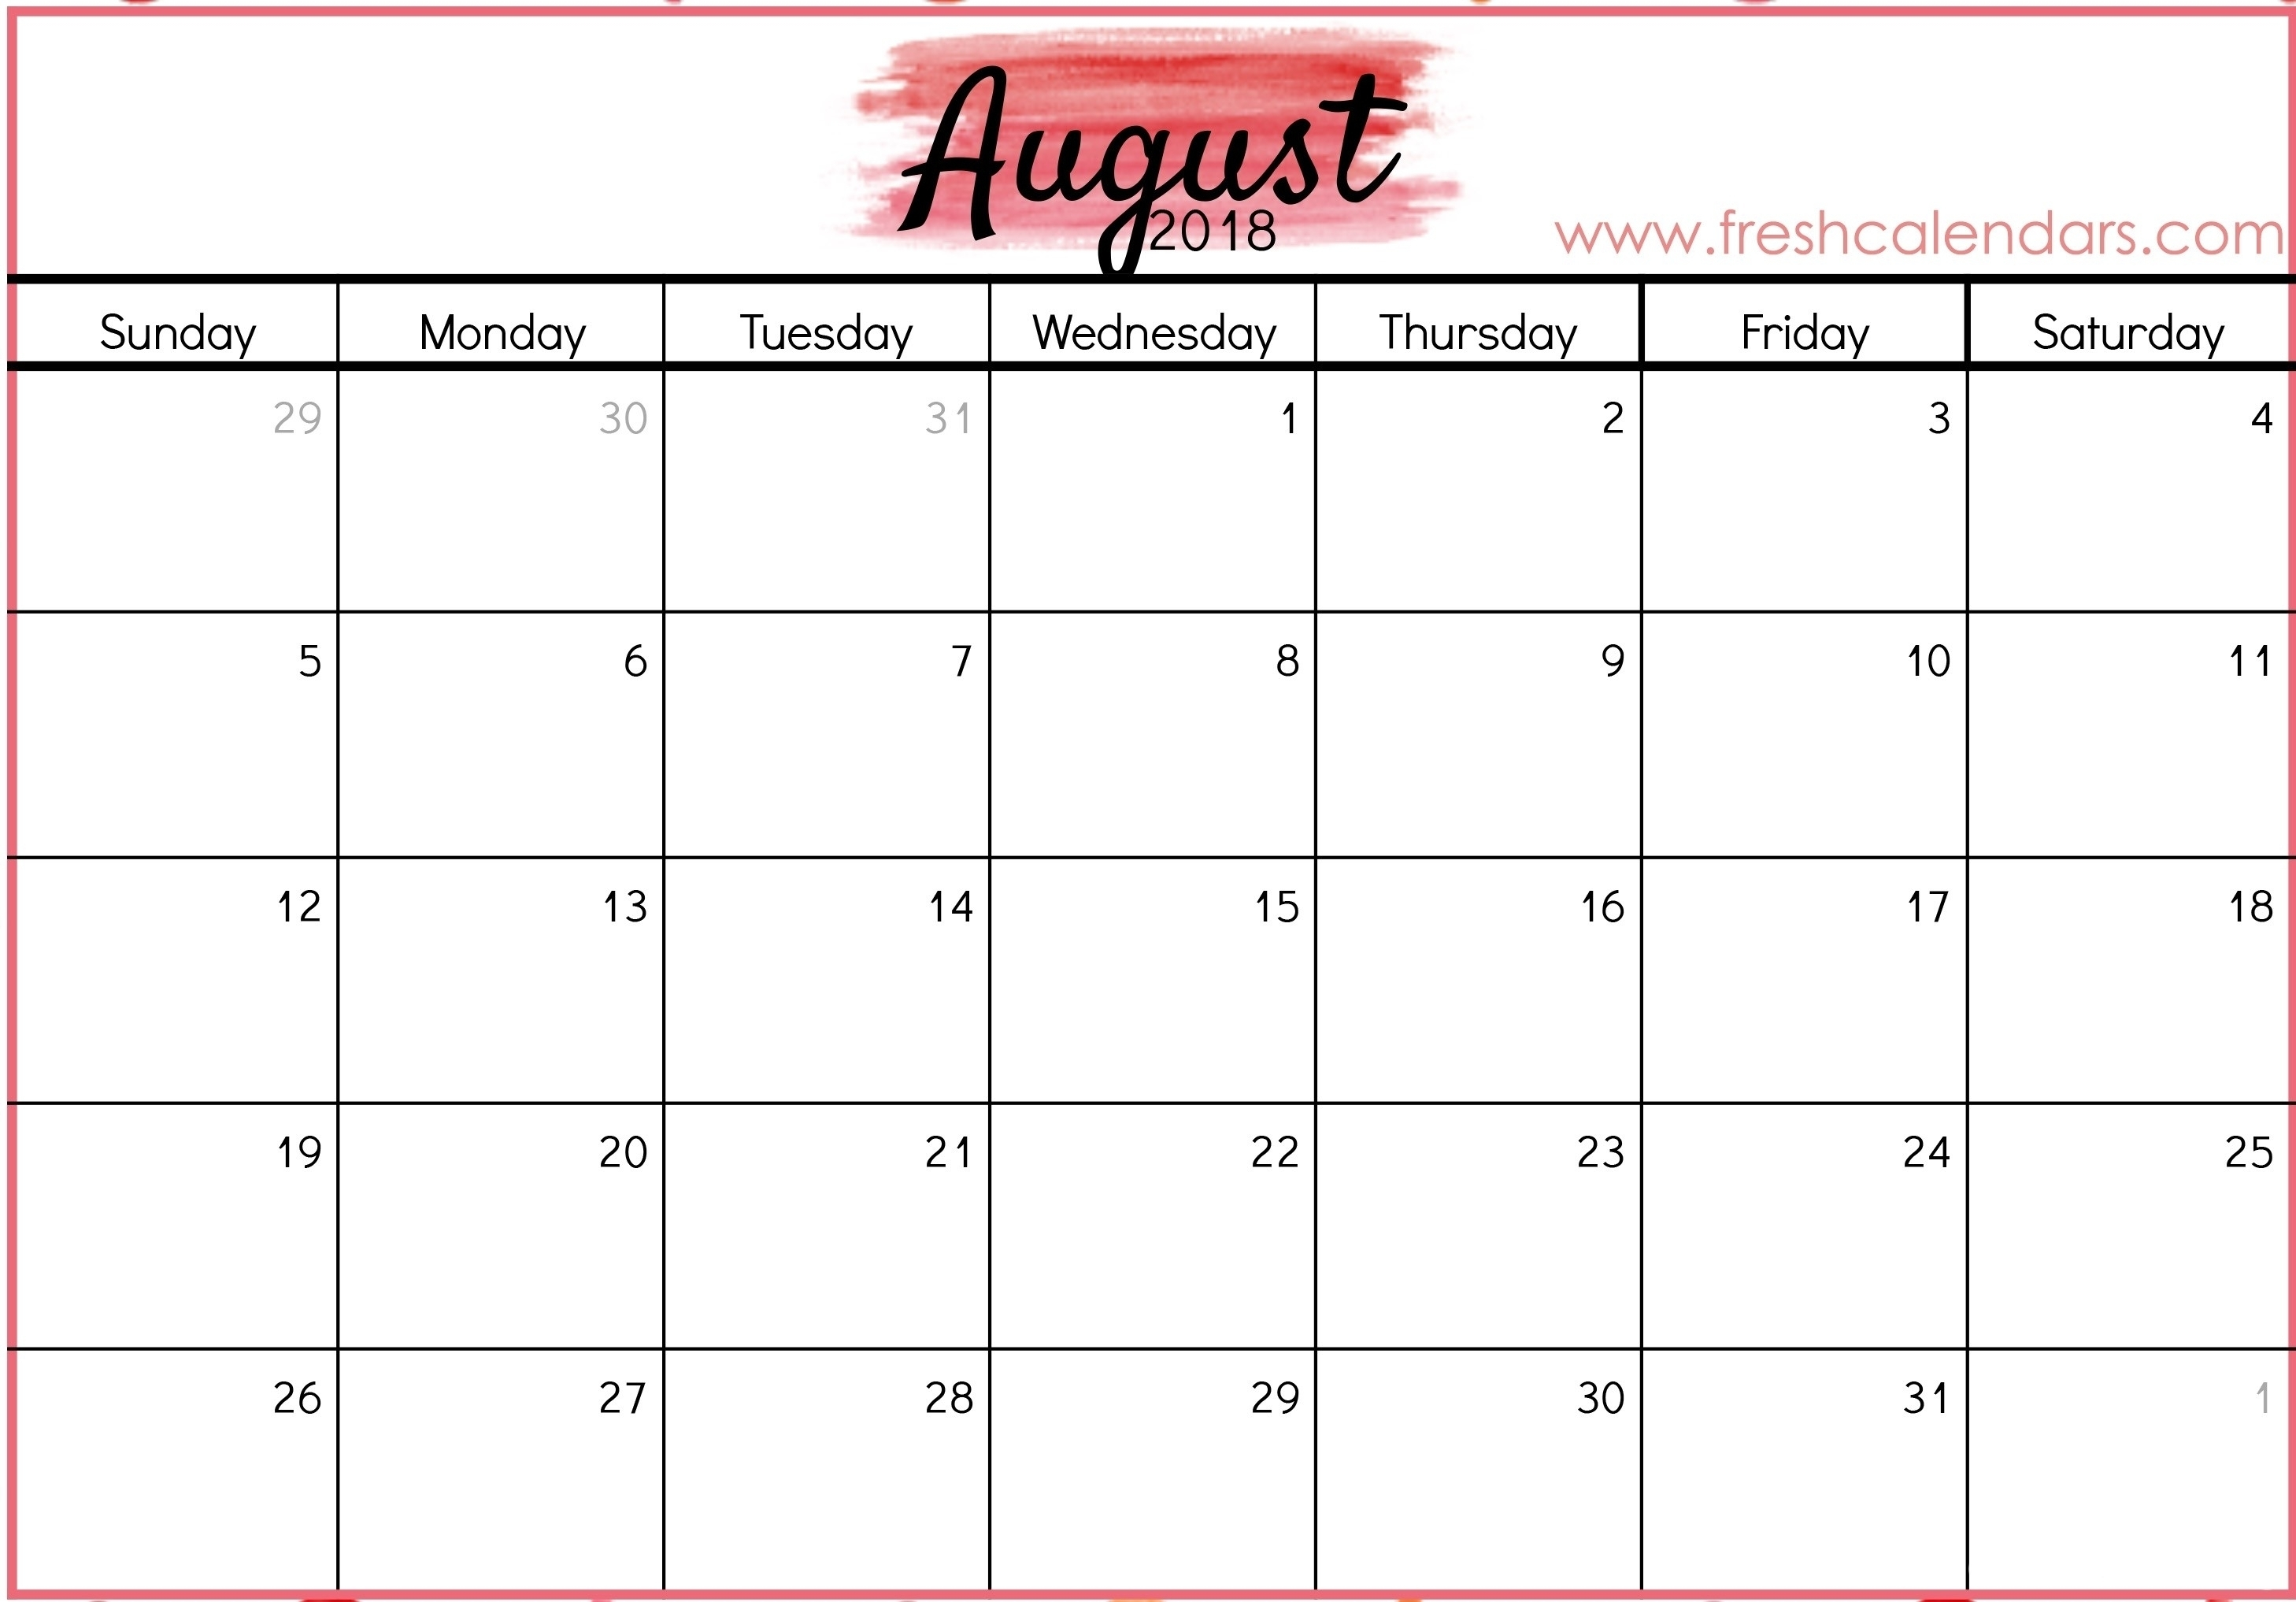 3 Month Printable Calendar Online August | Template Calendar Printable regarding 3 Month Printable Calendar Online